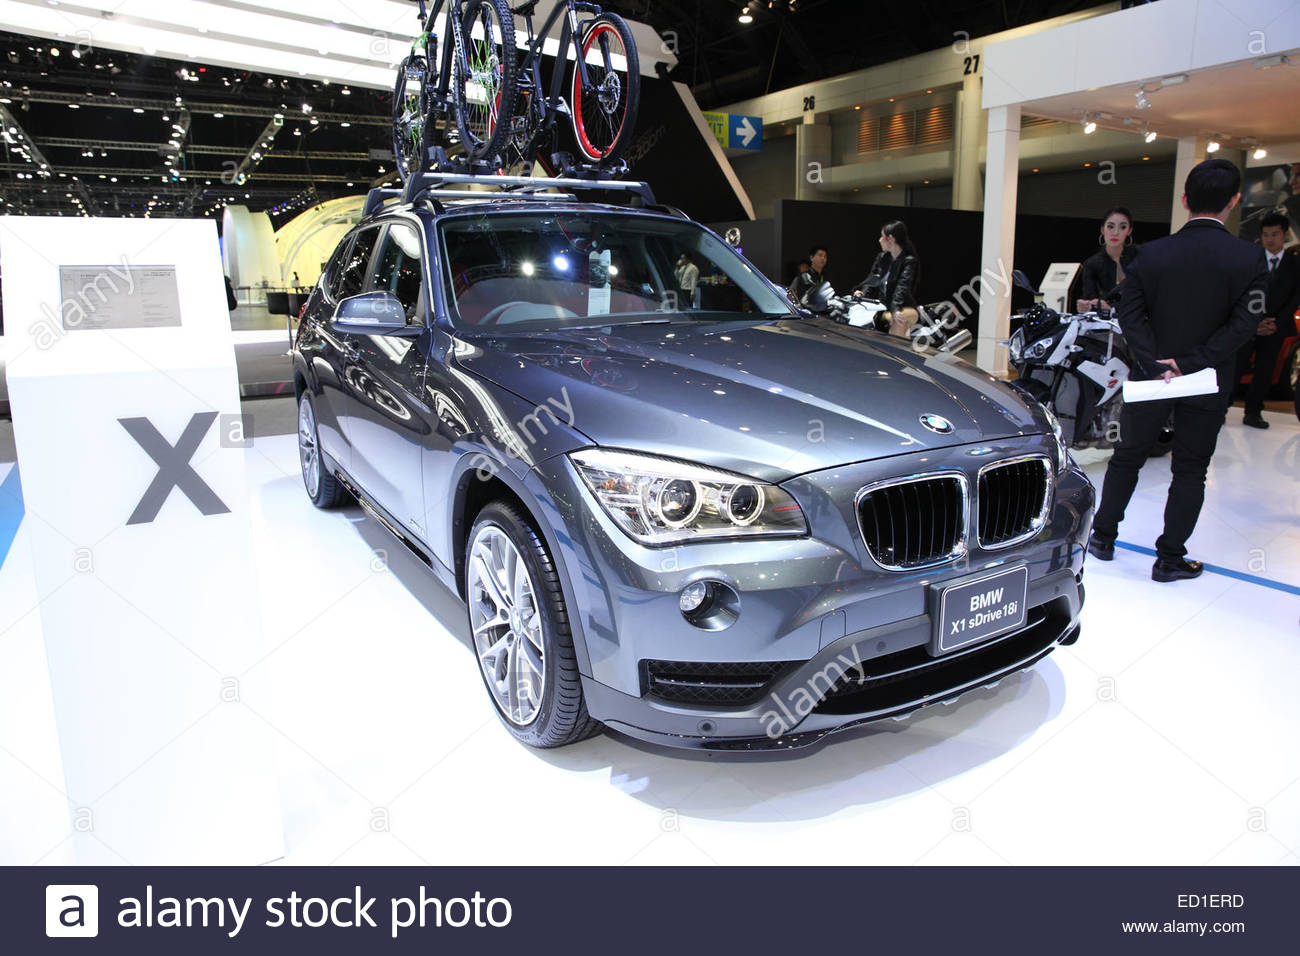 bmw x1 18i motor motorrad bild idee. Black Bedroom Furniture Sets. Home Design Ideas